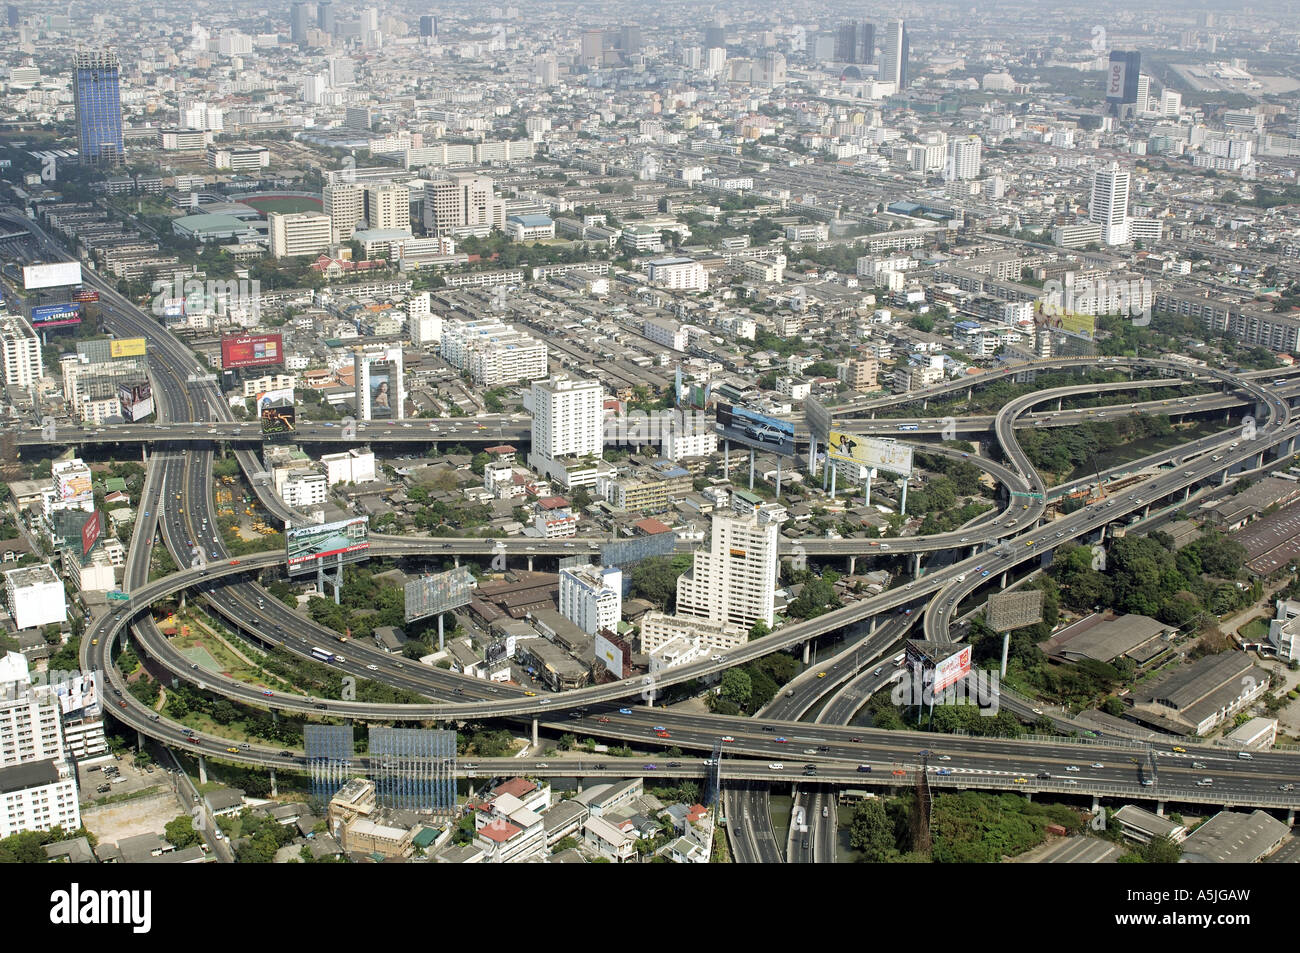 HMA102753 Aerial view of city with roads and flyovers Bangkok Thailand South East Asia - Stock Image